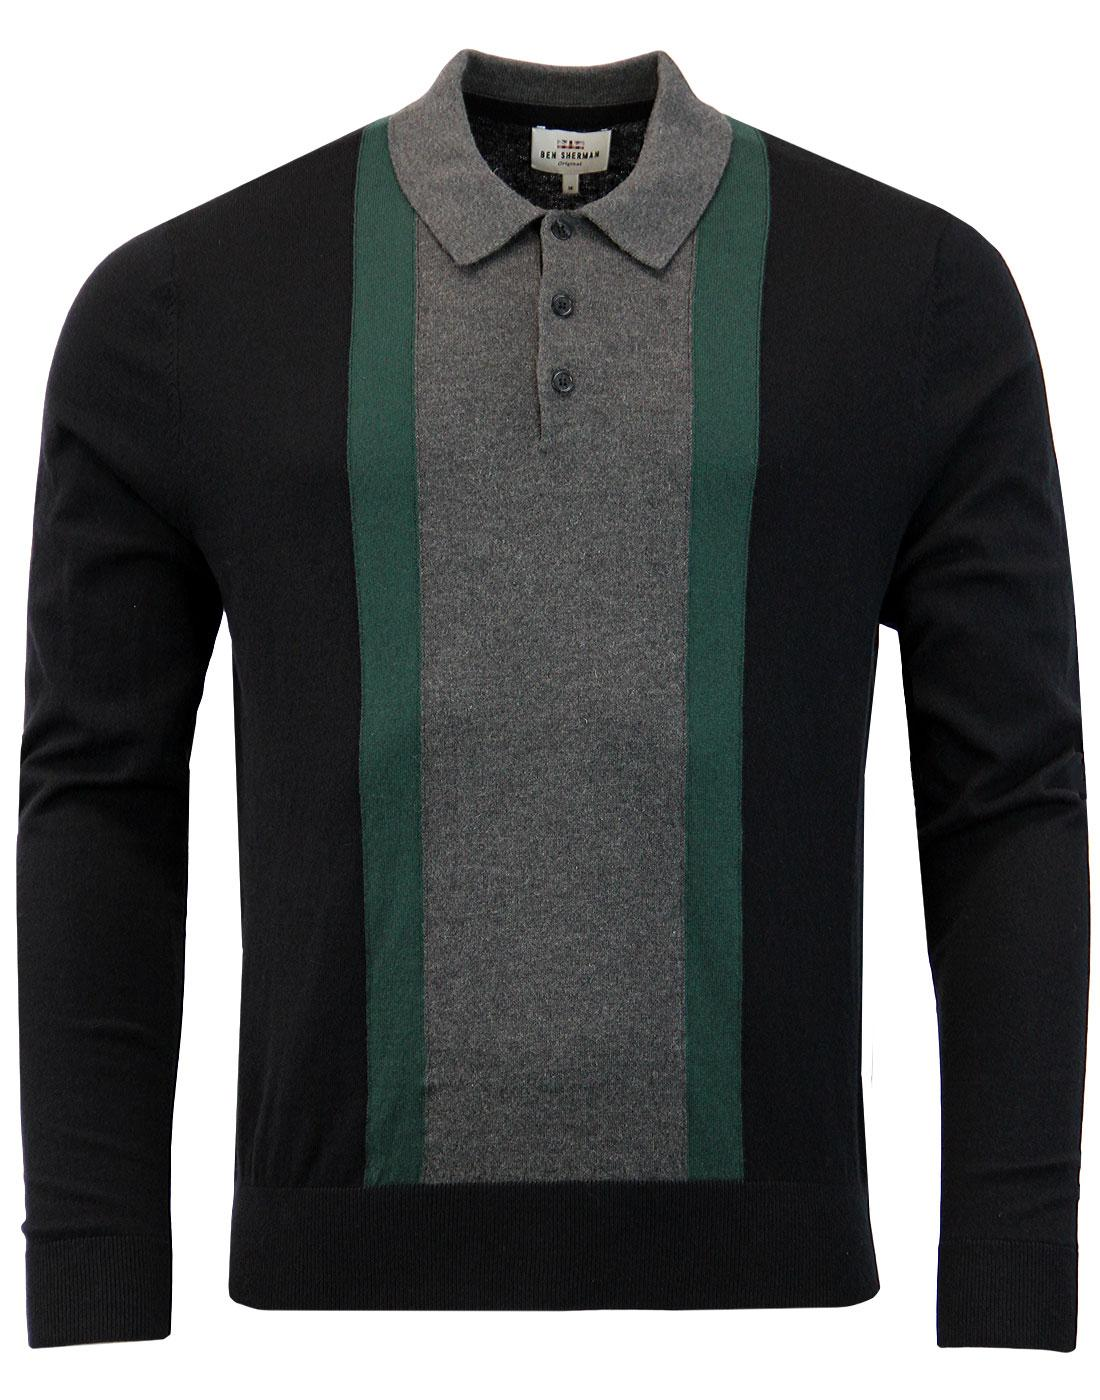 BEN SHERMAN 1960s Mod Colour Block Knit Polo BLACK